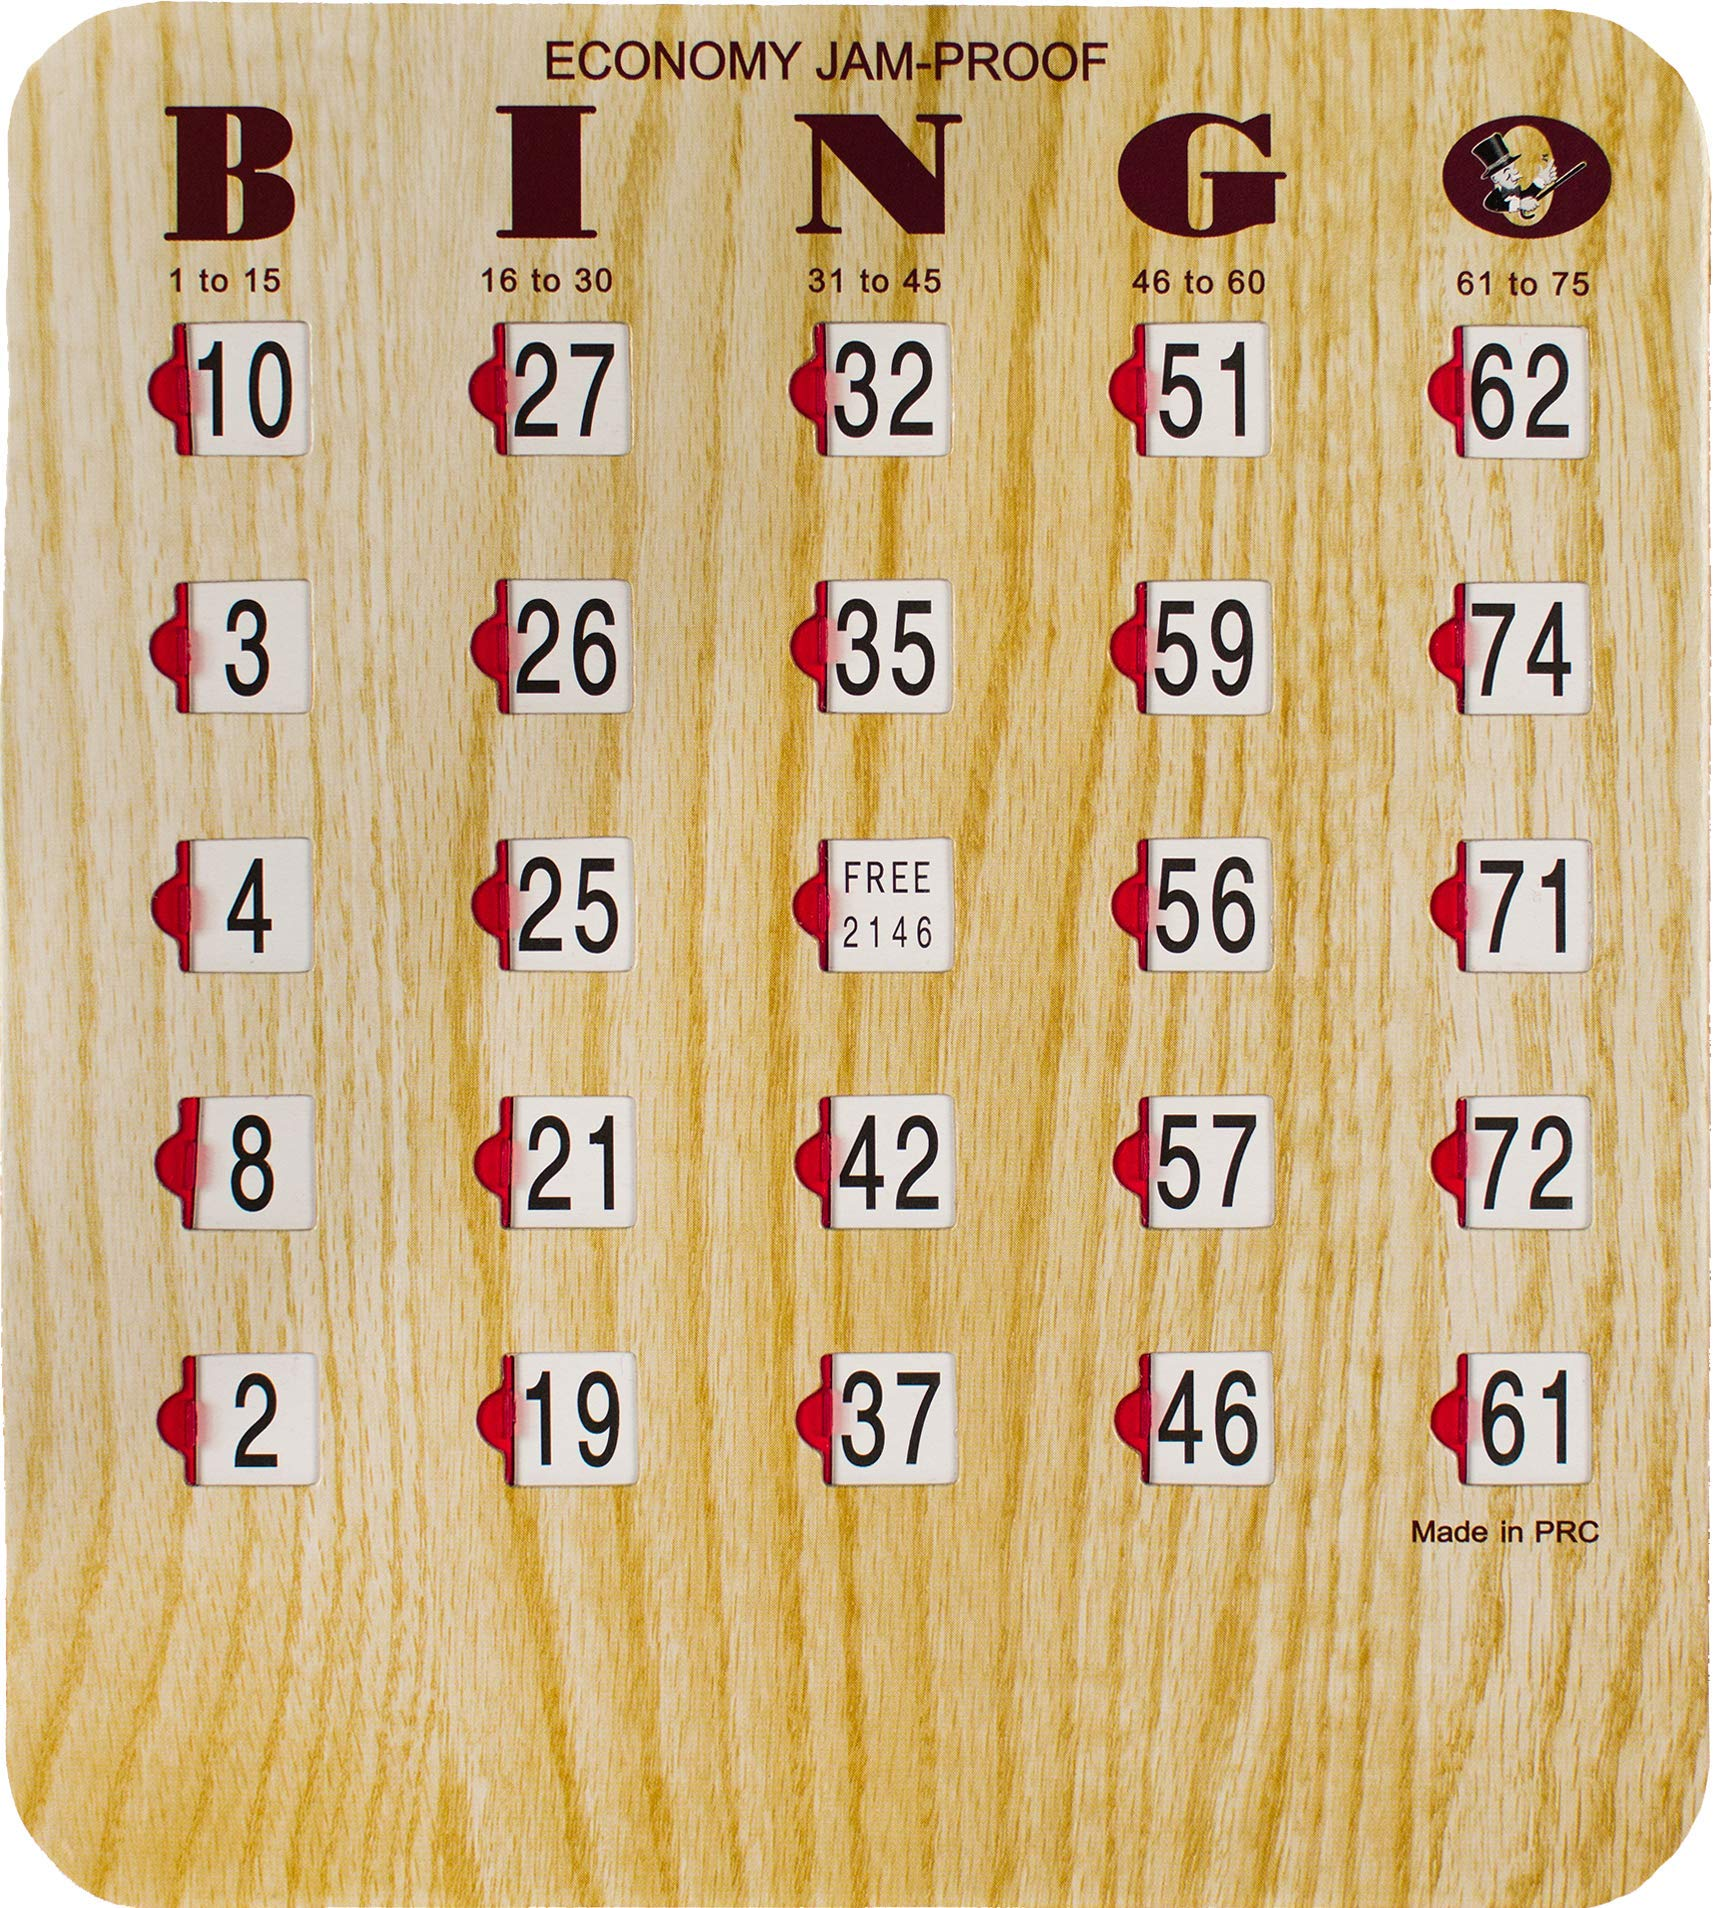 MR CHIPS Bingo Slide Shutter for Senior and Kids - Extra Thick Board - Jam Proof - Easy Sliders with Big Tabs - Wood Grain Color - 1 Card